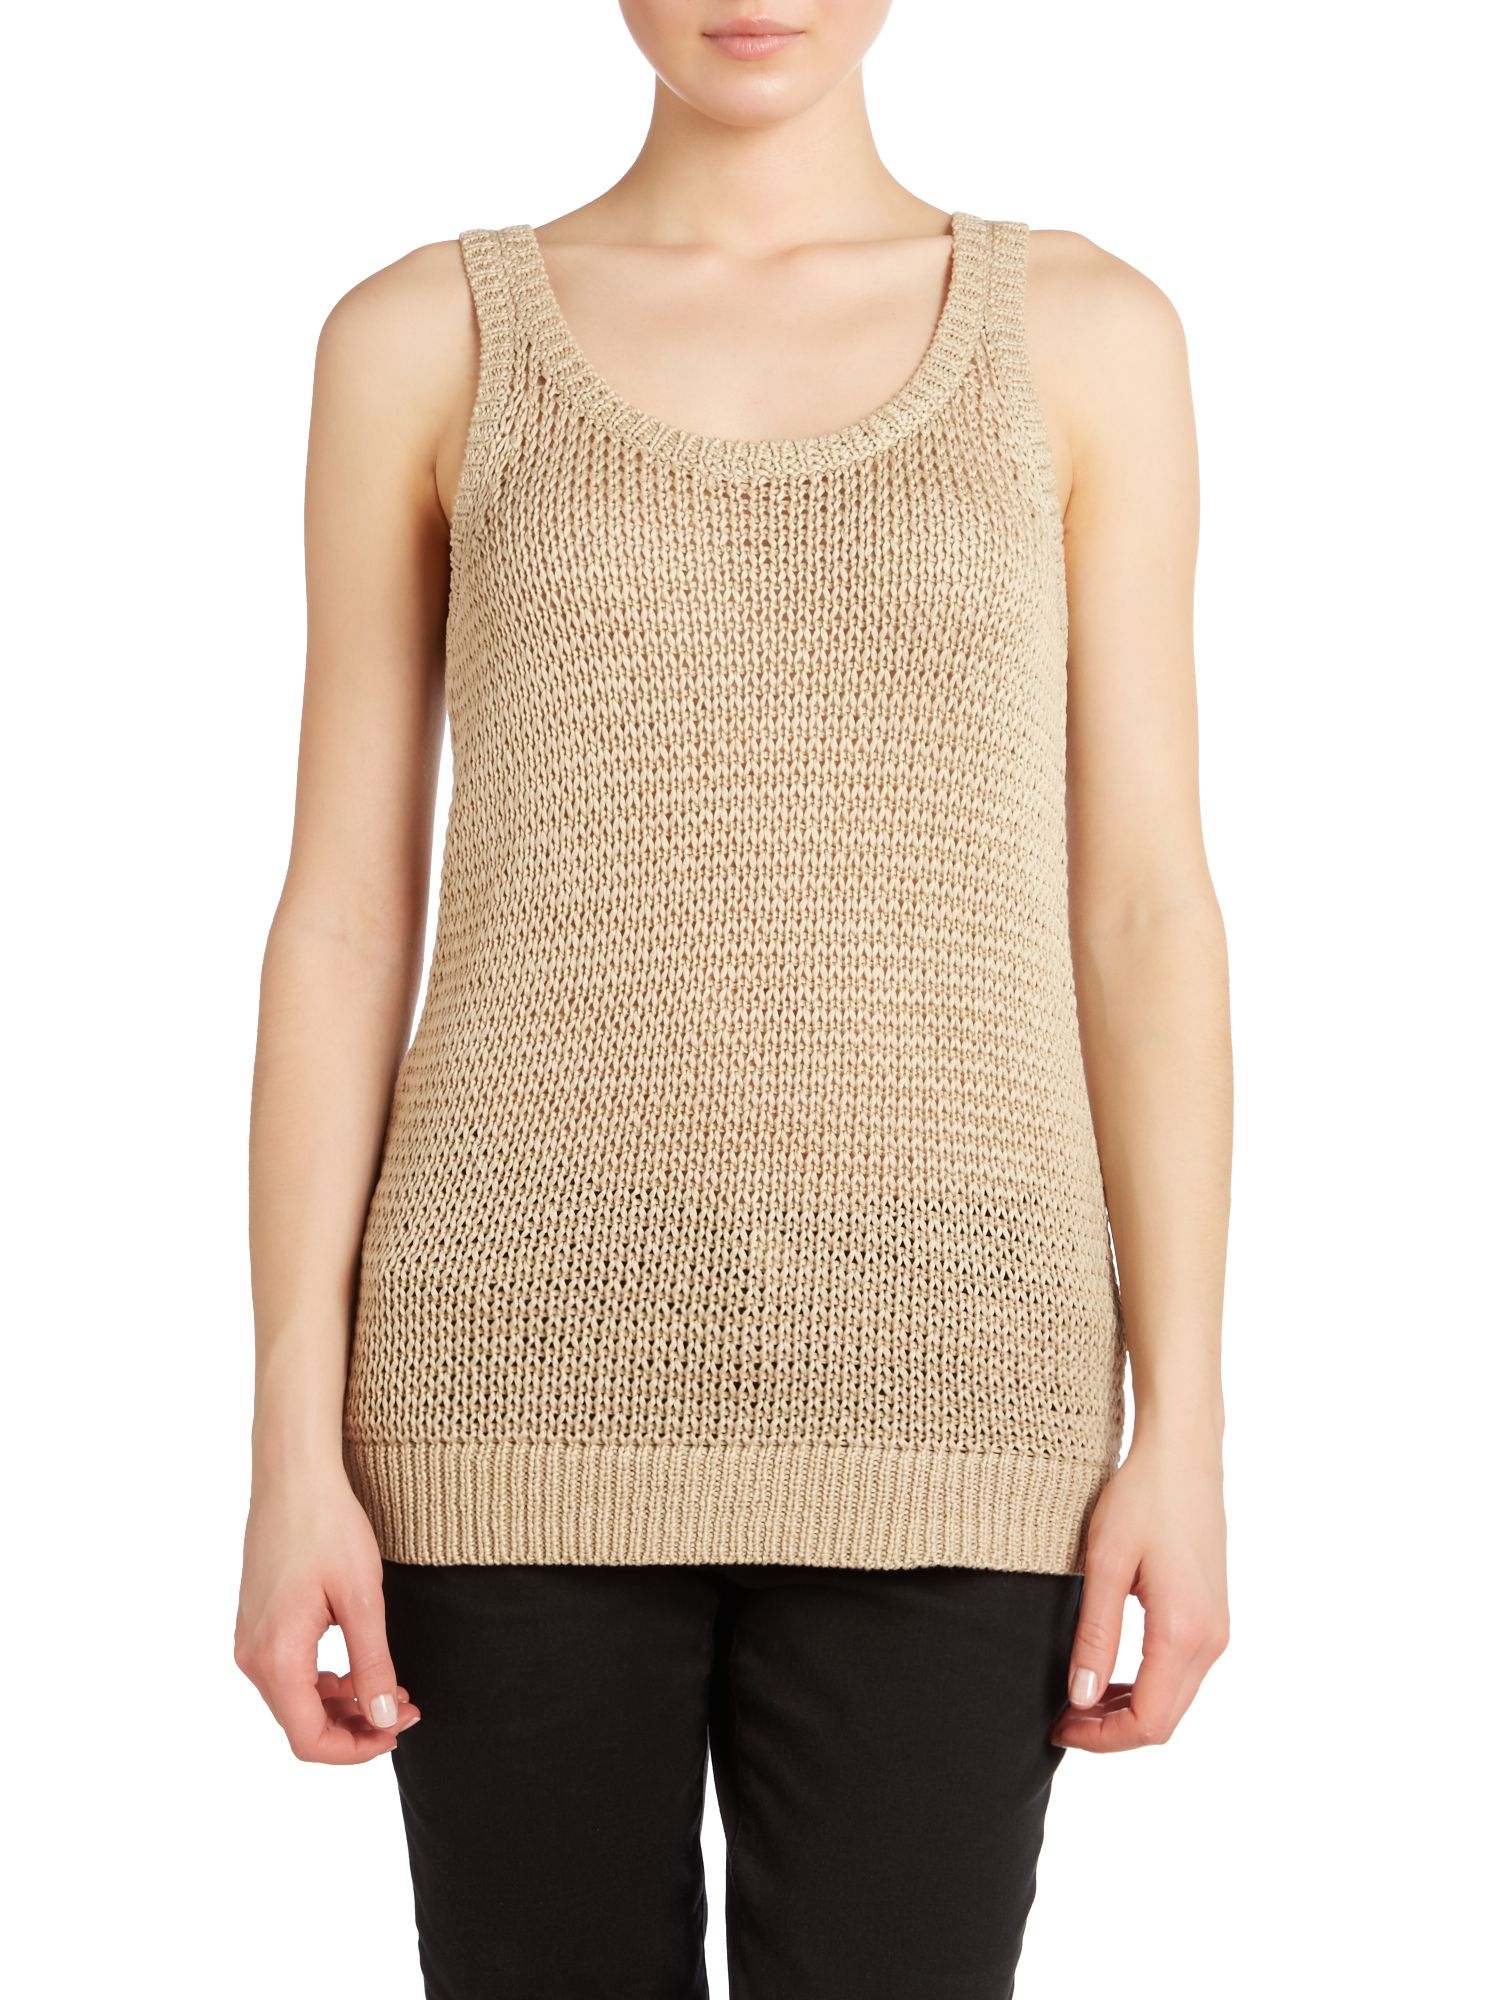 Sleeveless knitted tank top